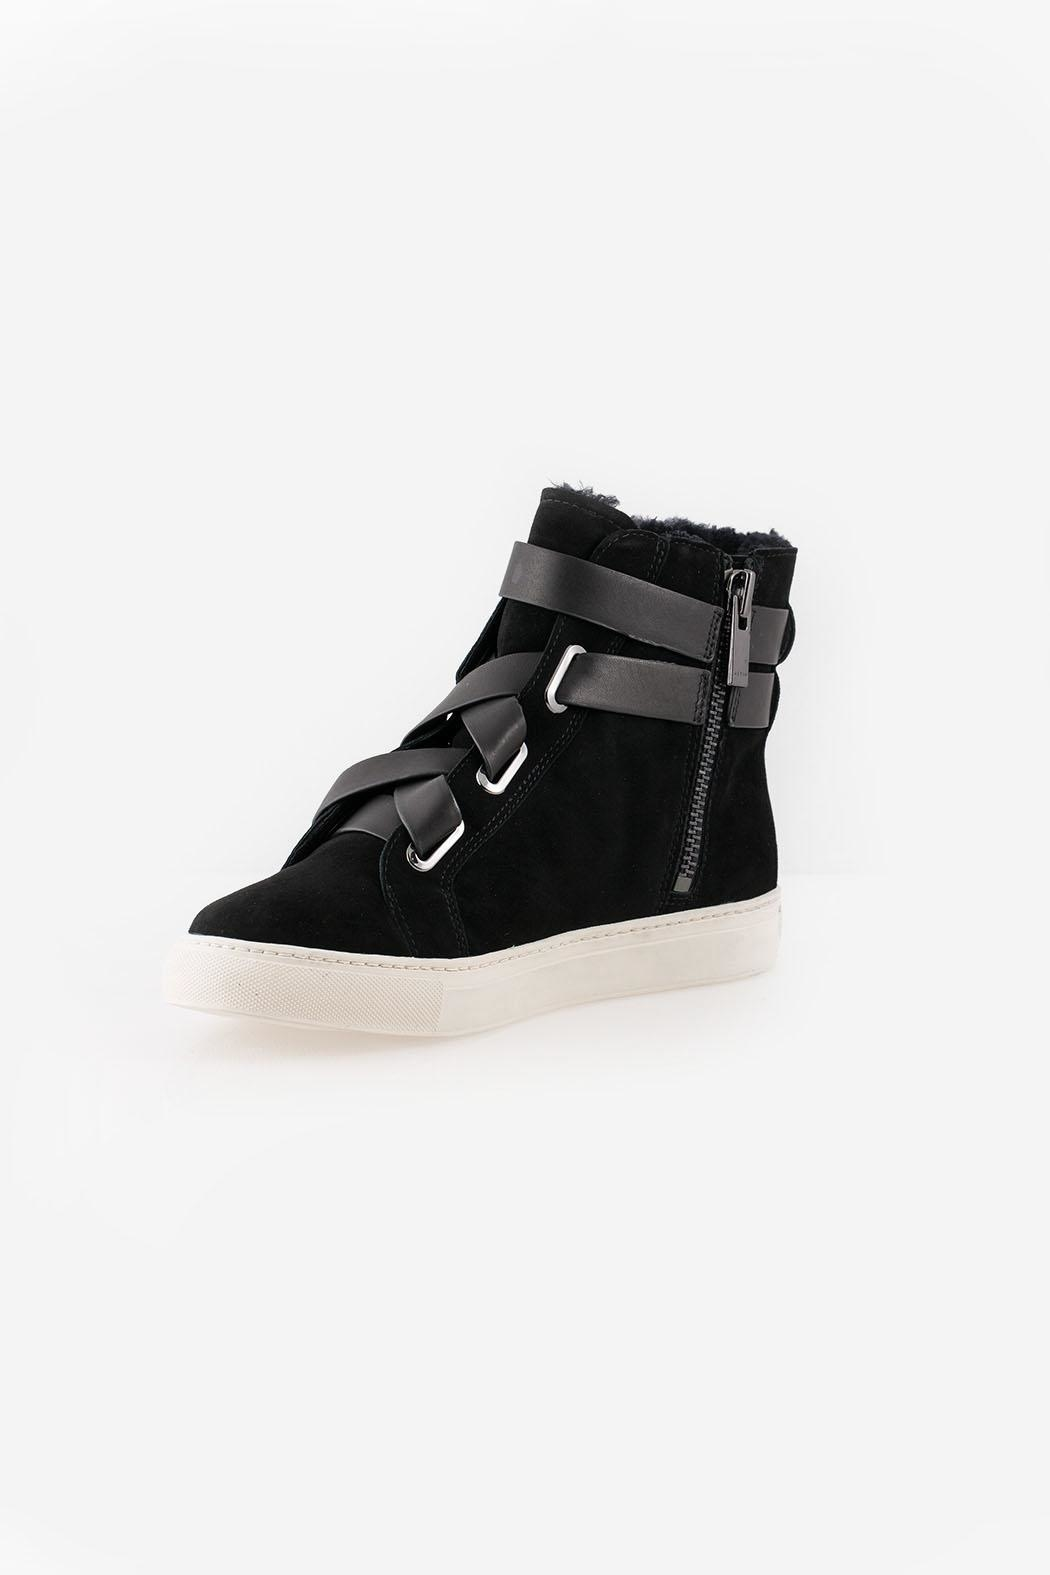 Aerin Baillee Suede Sneakers - Main Image